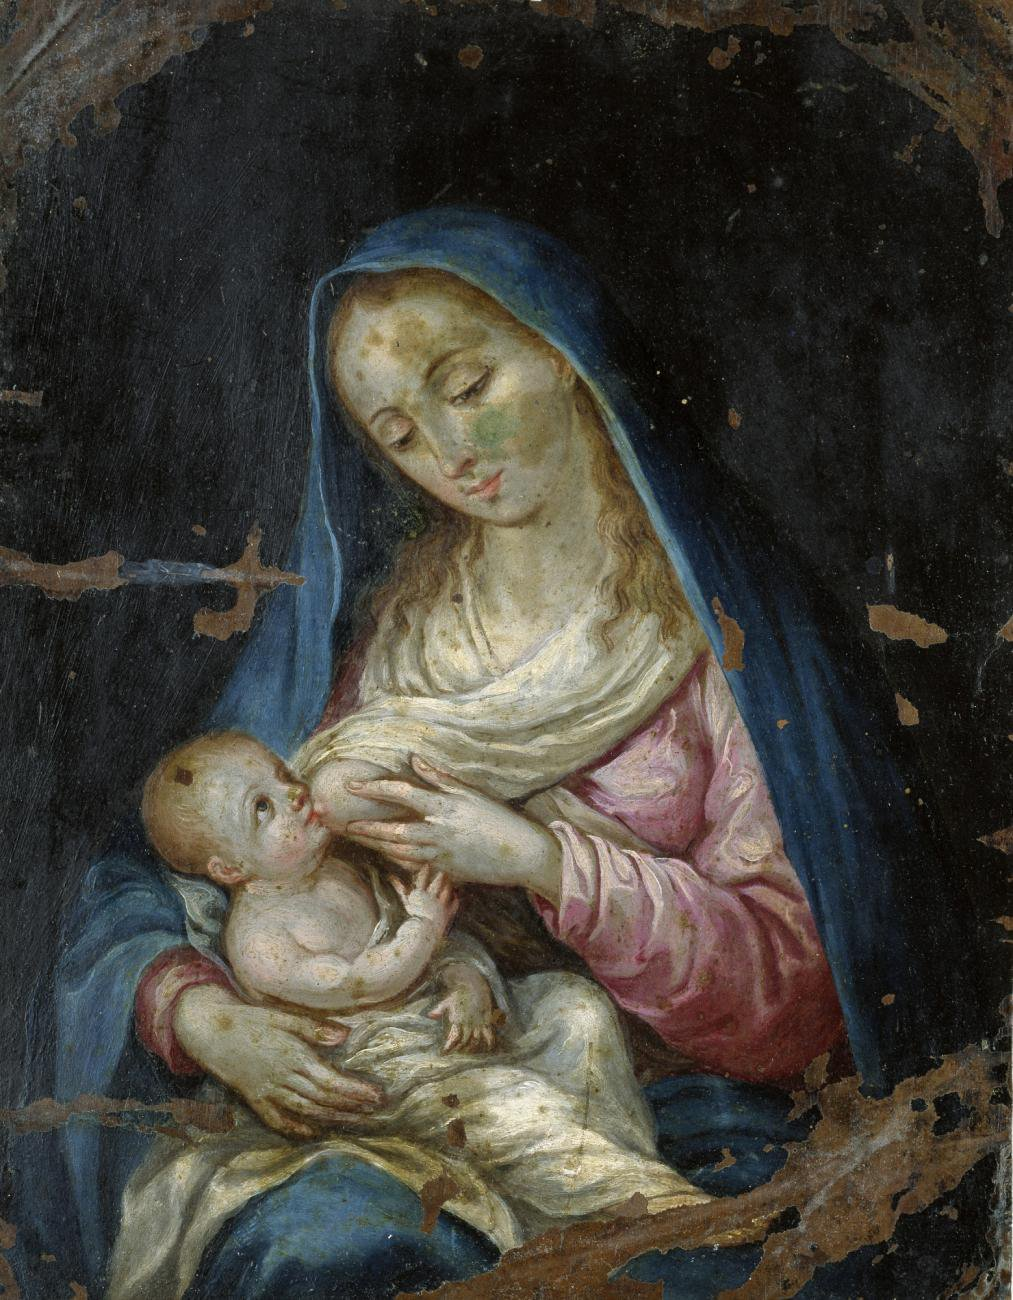 An oil painting of a woman breastfeeding a baby.